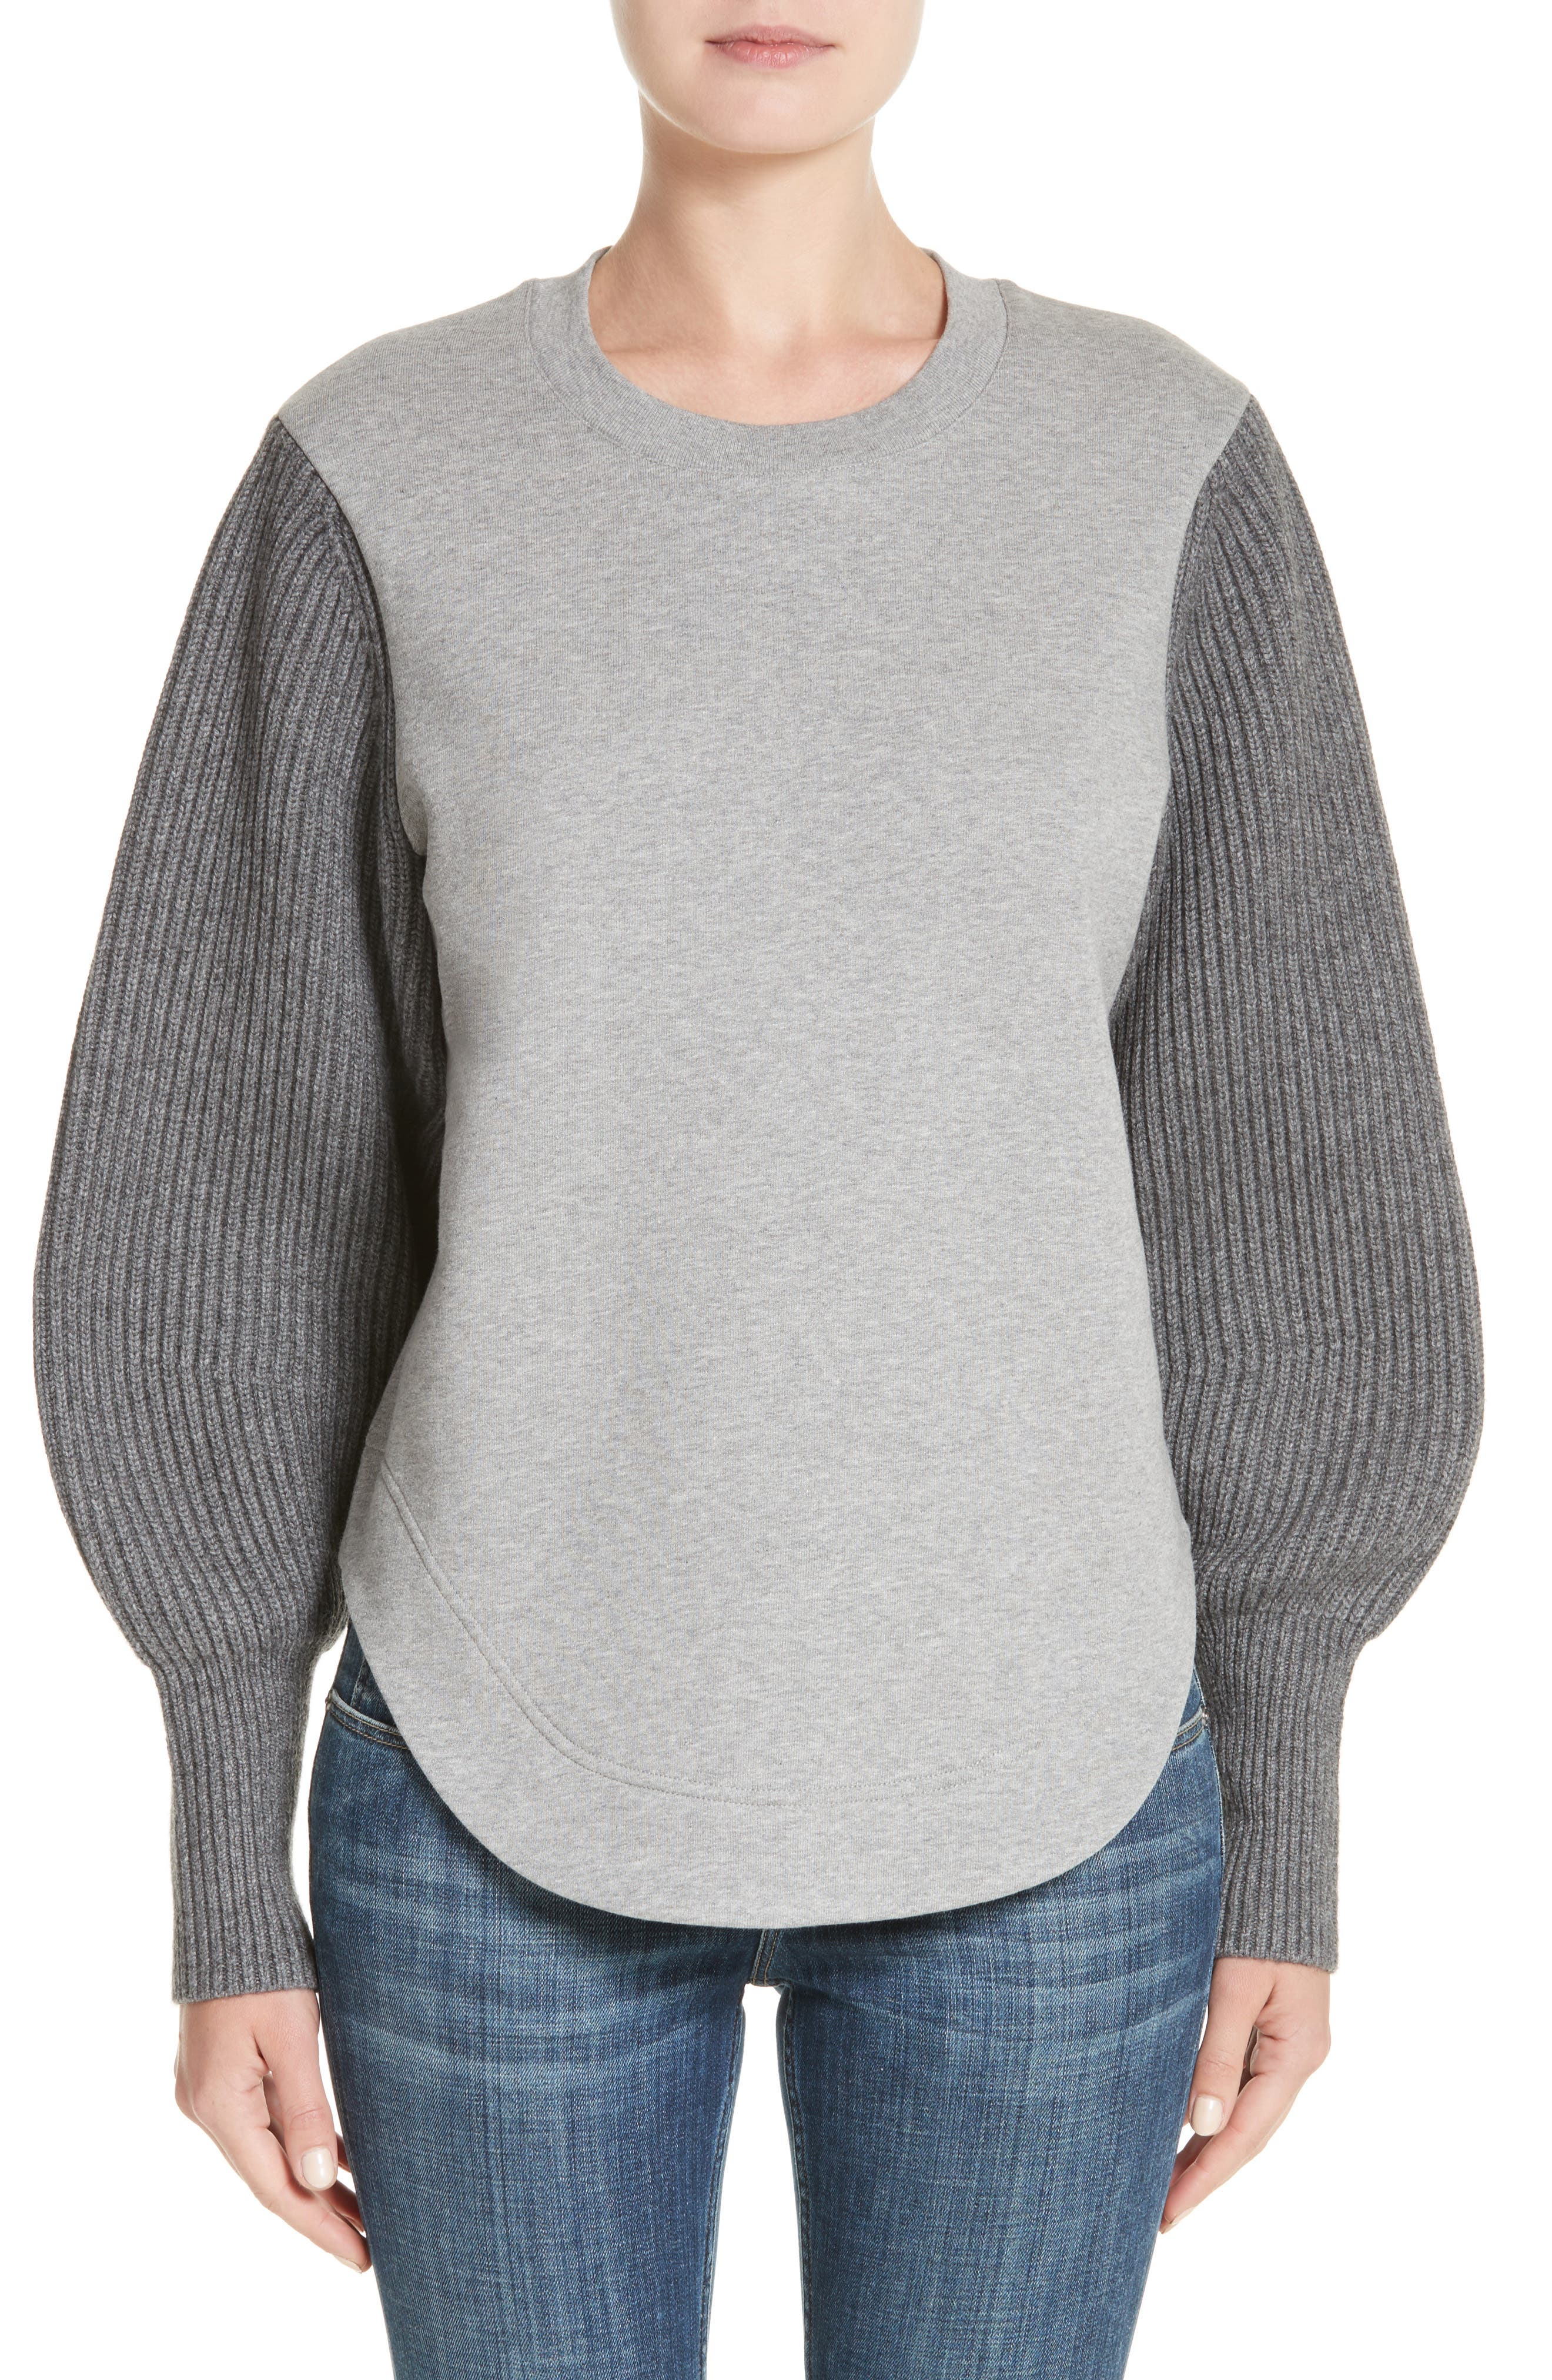 Alcobaca Rib Knit Sleeve Sweatshirt,                         Main,                         color, 050